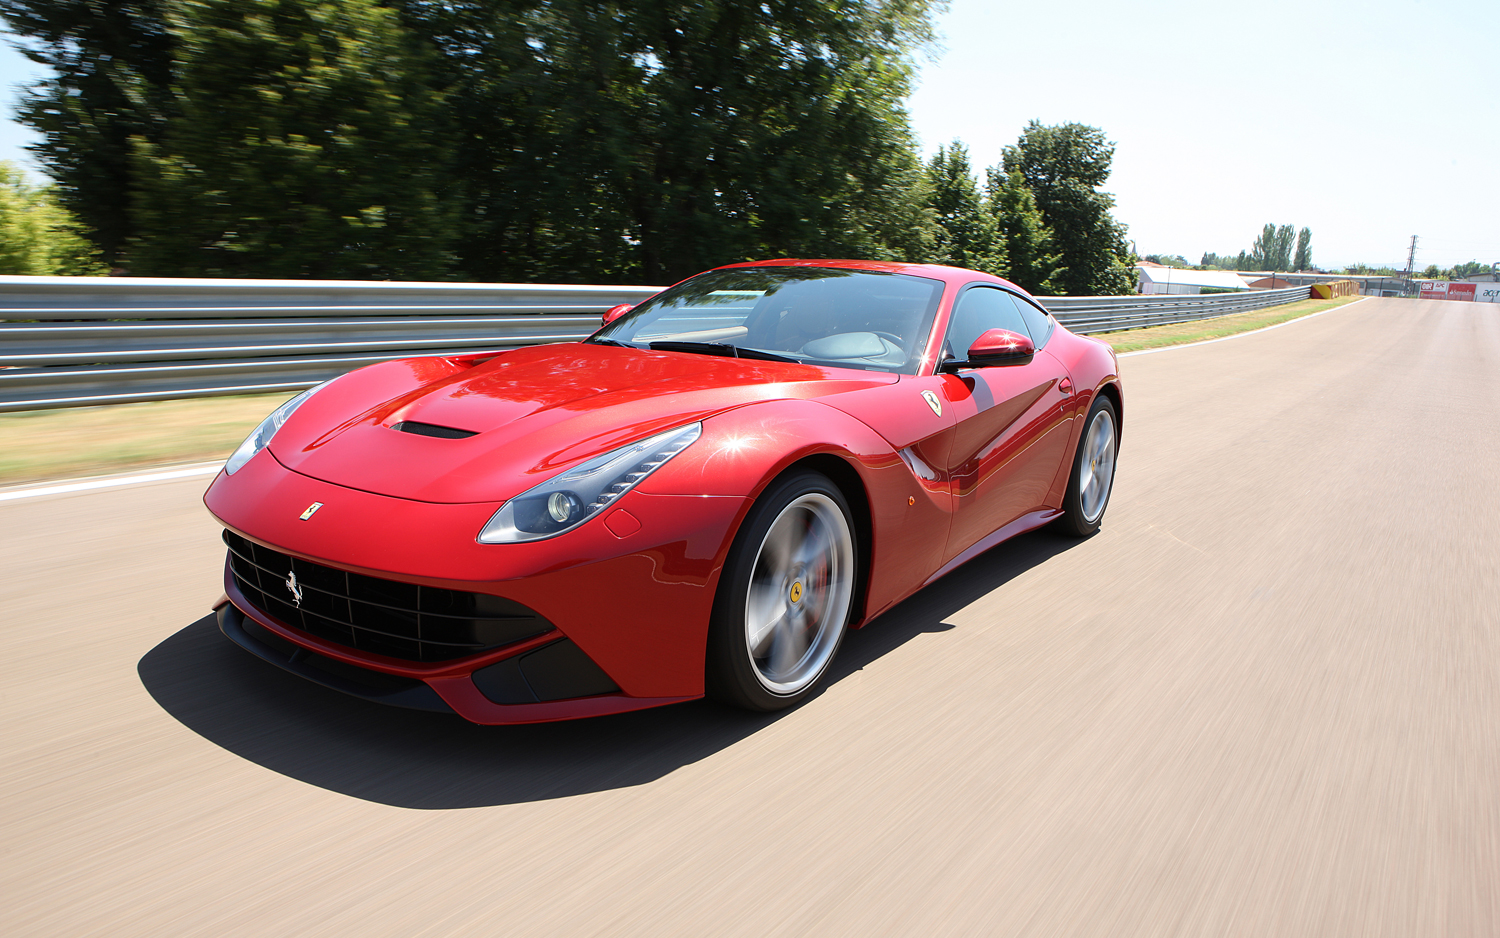 2015 Ferrari  F12 Berlinetta 1 Free Hd Car Wallpaper